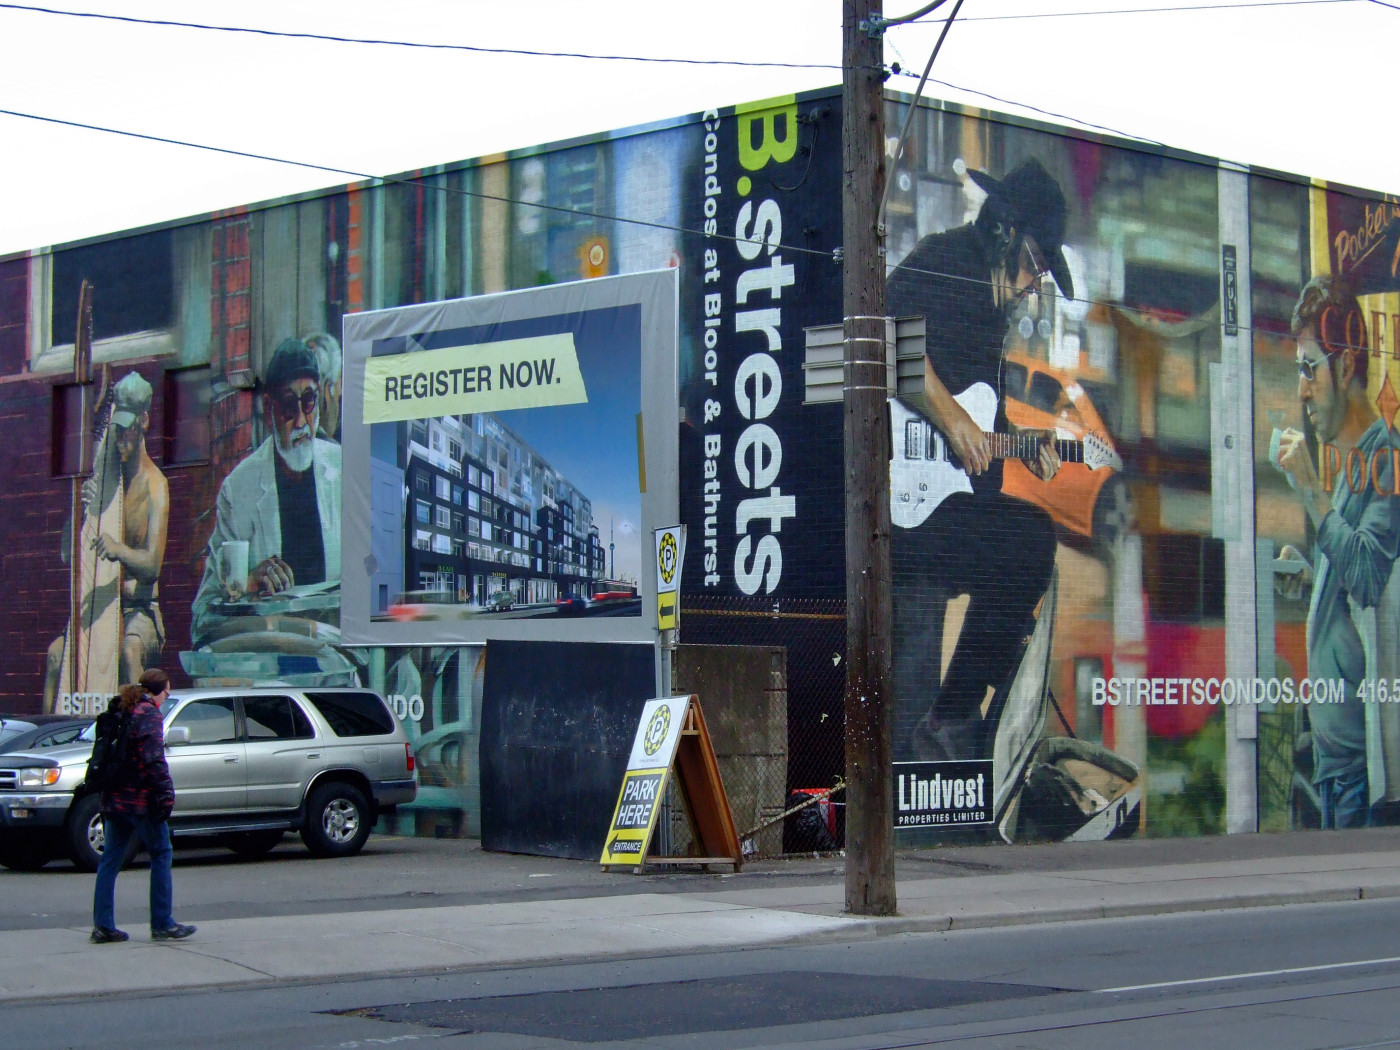 "Figure 4. ""B.streets"" proposed site, 2011, will occupy the former Loretto College building at Central Tech School at Bathurst, near Bloor. The project launched with unusual fanfare, including a prominent piece in the Toronto Star in September 2011. While conceptual mural art depicts a lively street life reminiscent more of New Orleans or Portland than of Toronto, the inset illustration of the edifice shows no trace that the ""B.streets"" name will survive once construction is completed. [Idlewild]"